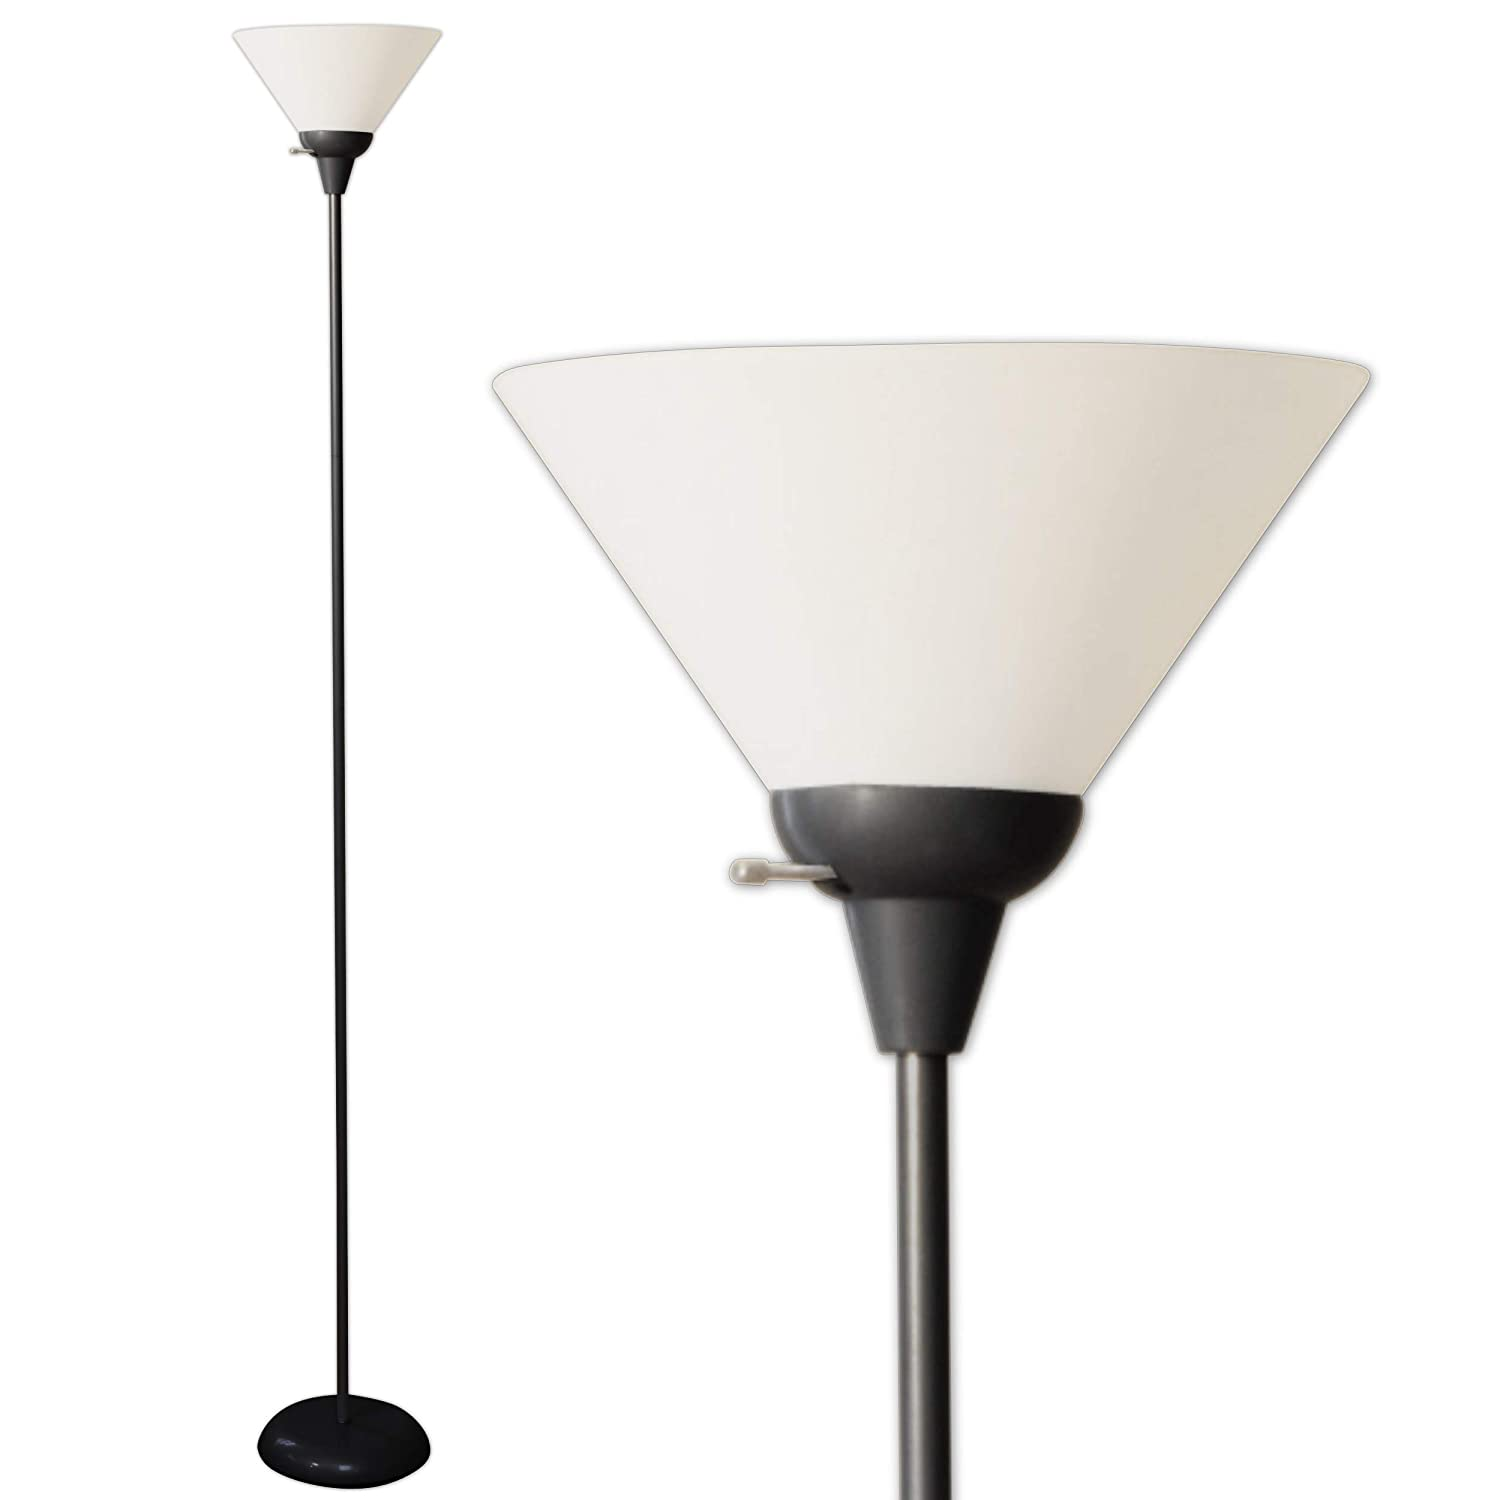 Light Accents Mary Floor Lamp for Living Rooms - Standing Pole Light - Torch Lamps Bright Reading Light with White Shade - Black